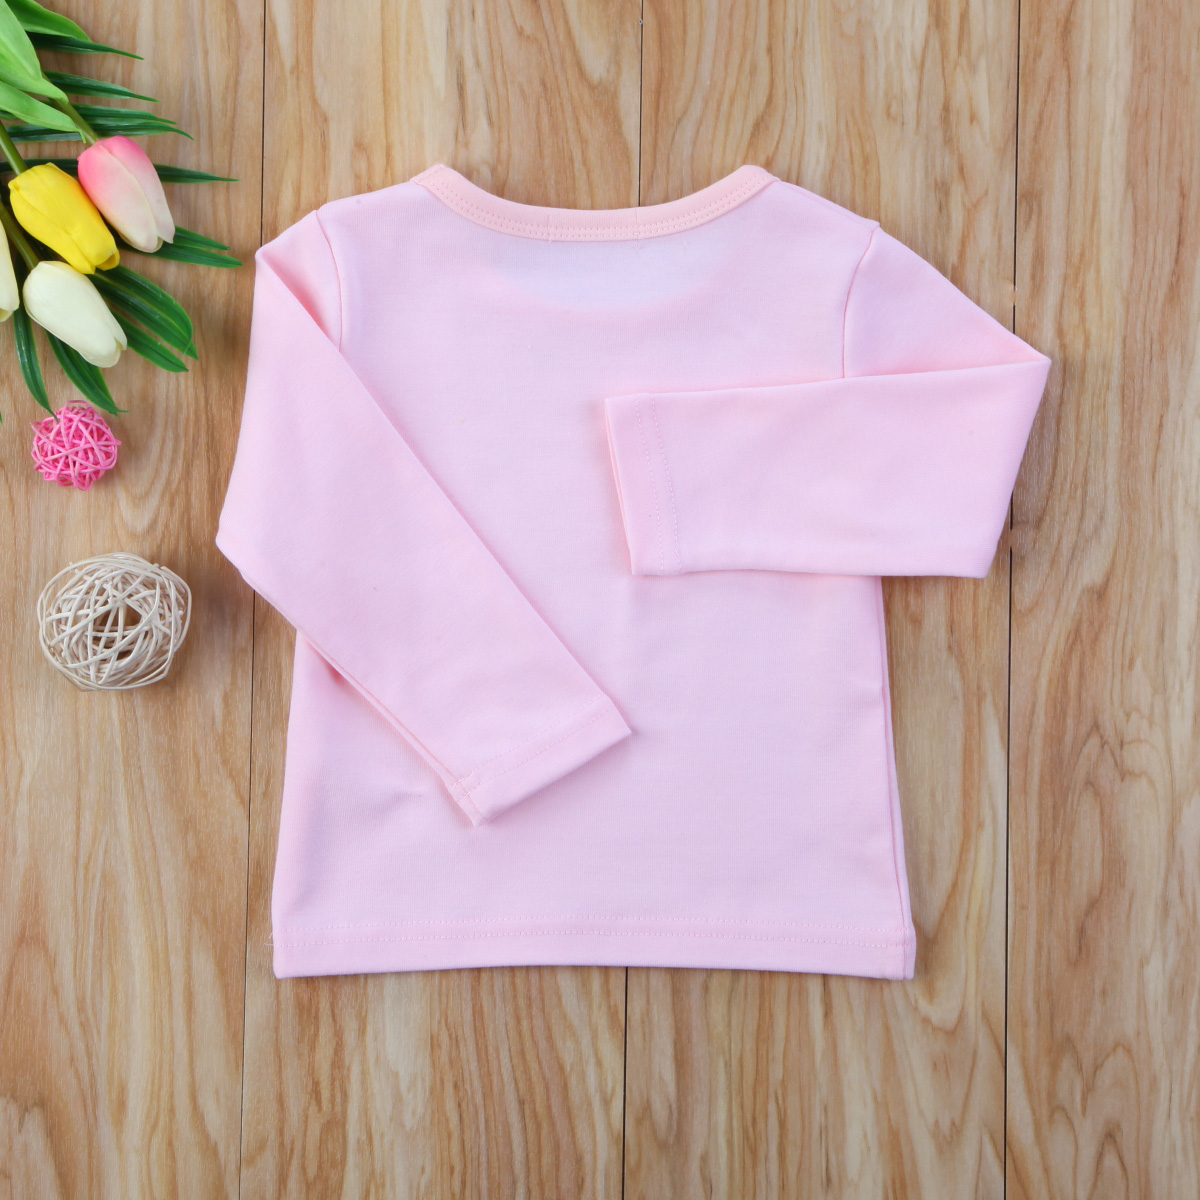 Autumn Cotton Newborn Infant Kids Baby Boys Girls Clothes Solid Cotton Soft Clothing Long Sleeves T-shirt Tops 4